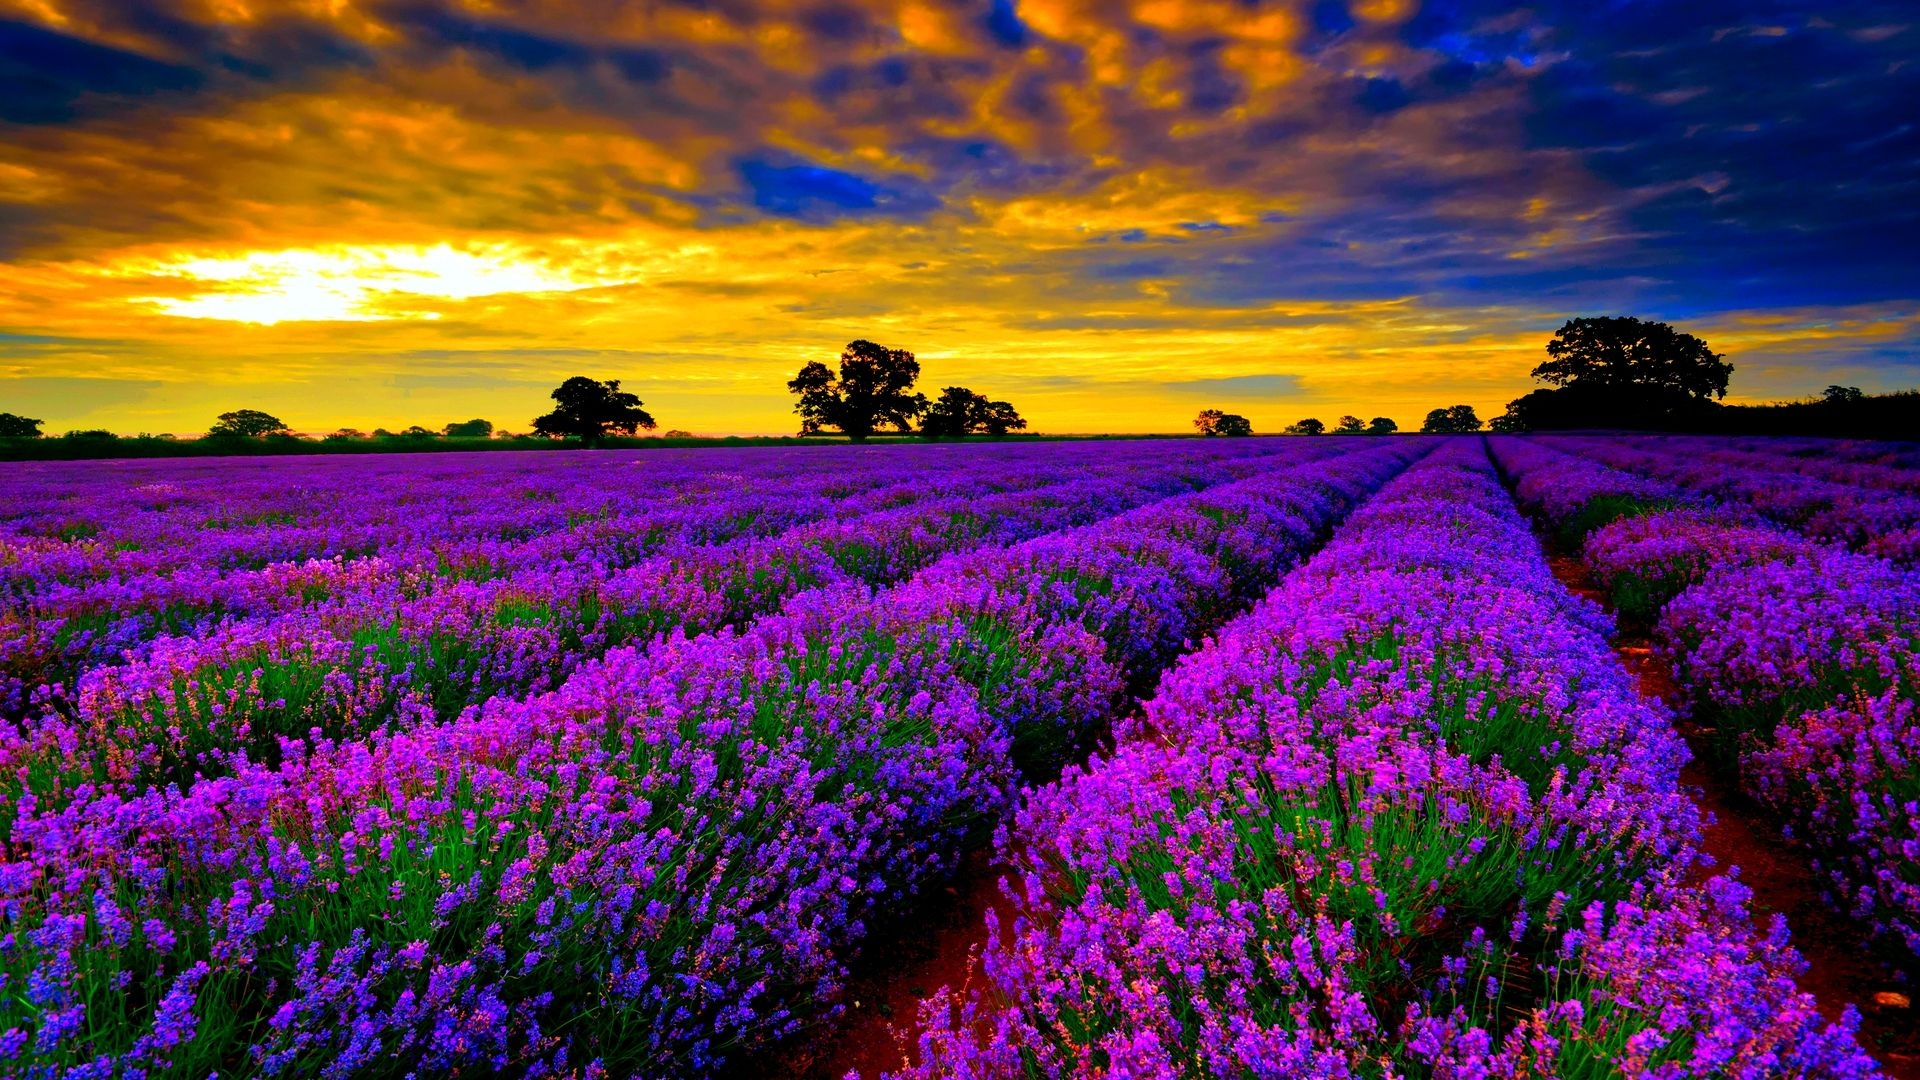 HD Most Beautiful Field Of Lavender Flowers Widescreen High